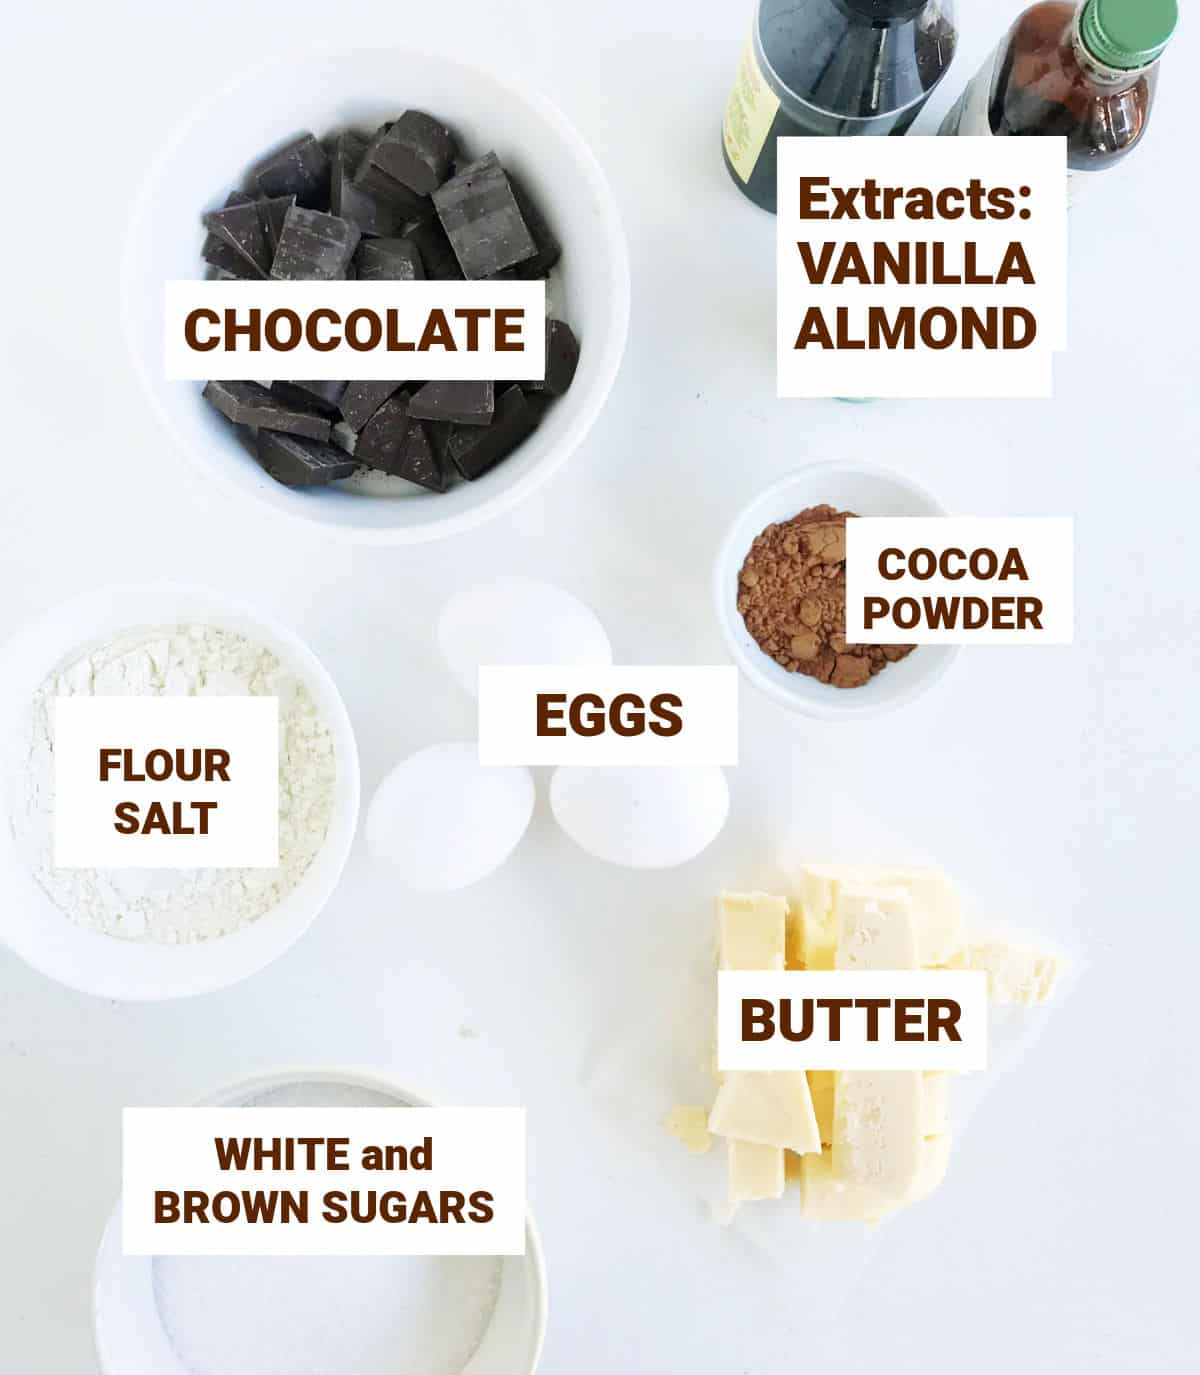 White surface with bowls containing ingredients for brownies, including extracts, cocoa powder, chocolate and whole eggs